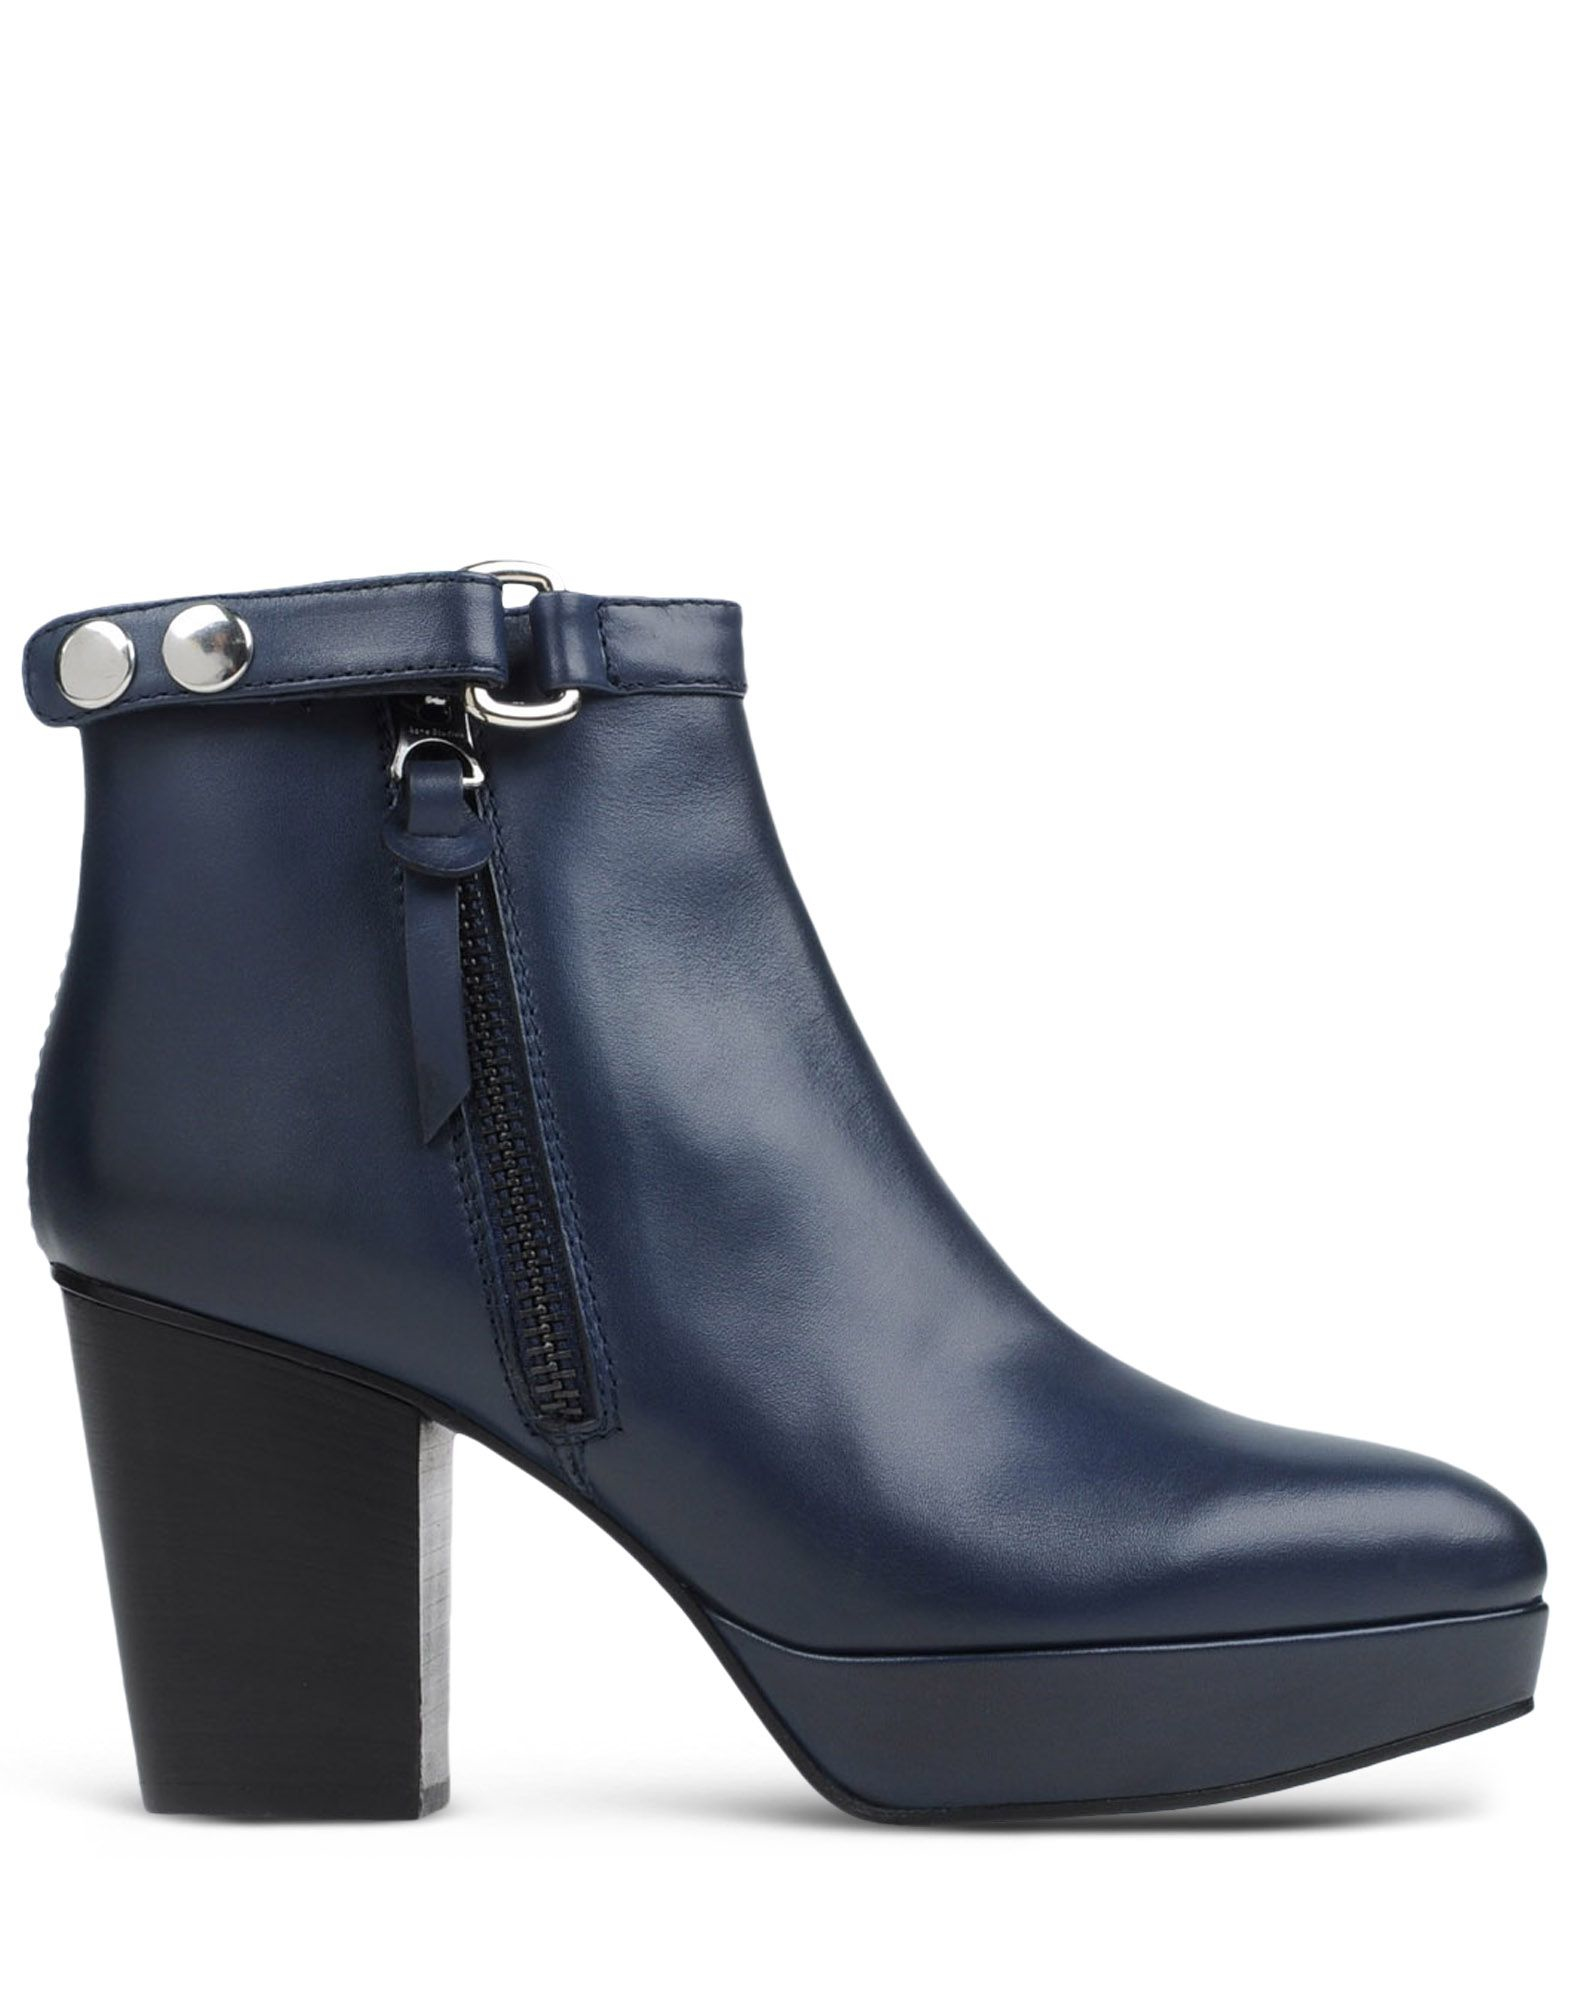 acne ankle boots in blue dark blue lyst. Black Bedroom Furniture Sets. Home Design Ideas